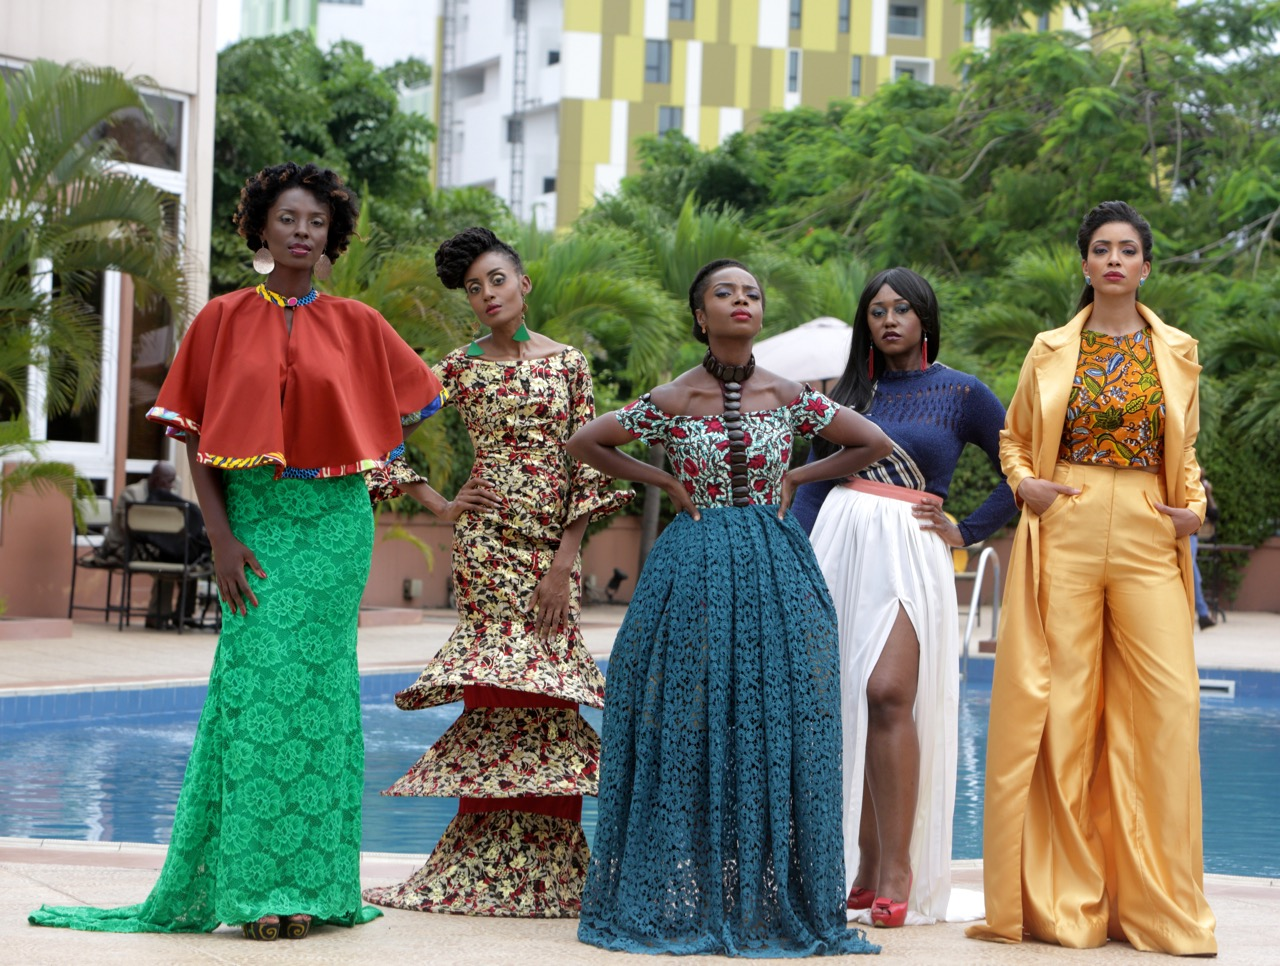 An African City ensemble cast. All photos courtesy of Maame Adjei co-producer of the series.